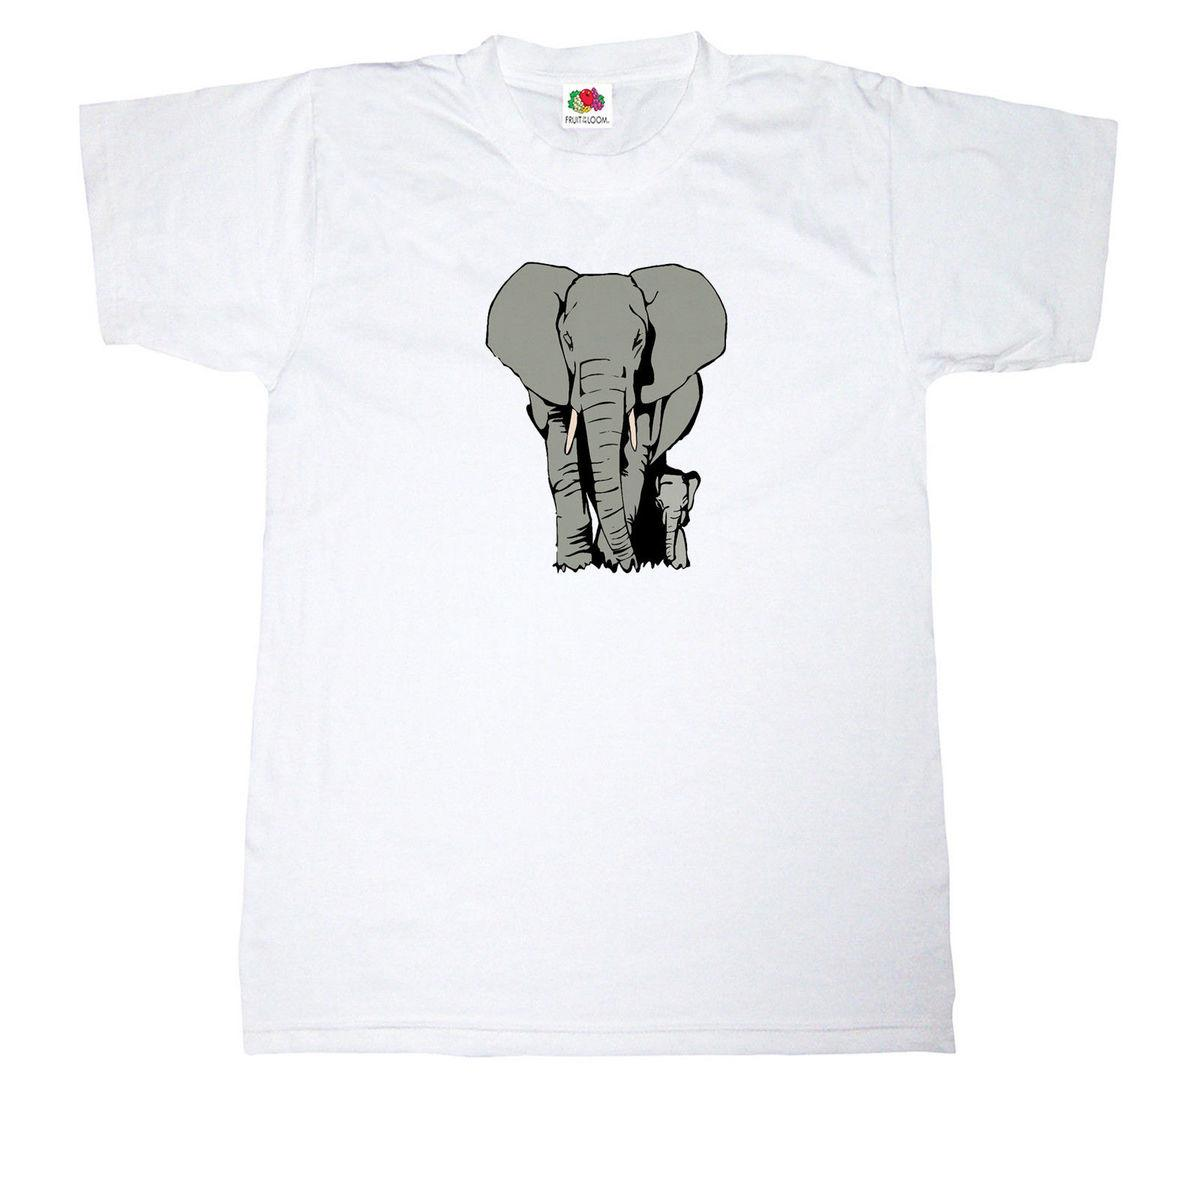 ad9c6a301c2d ELEPHANT T SHIRT 100% COTTON AFRICAN INDIAN WILD ANIMAL SAFARI JUNGLE T  SHIRT Buy T Shirts Online T Shirt From Qz3195649603